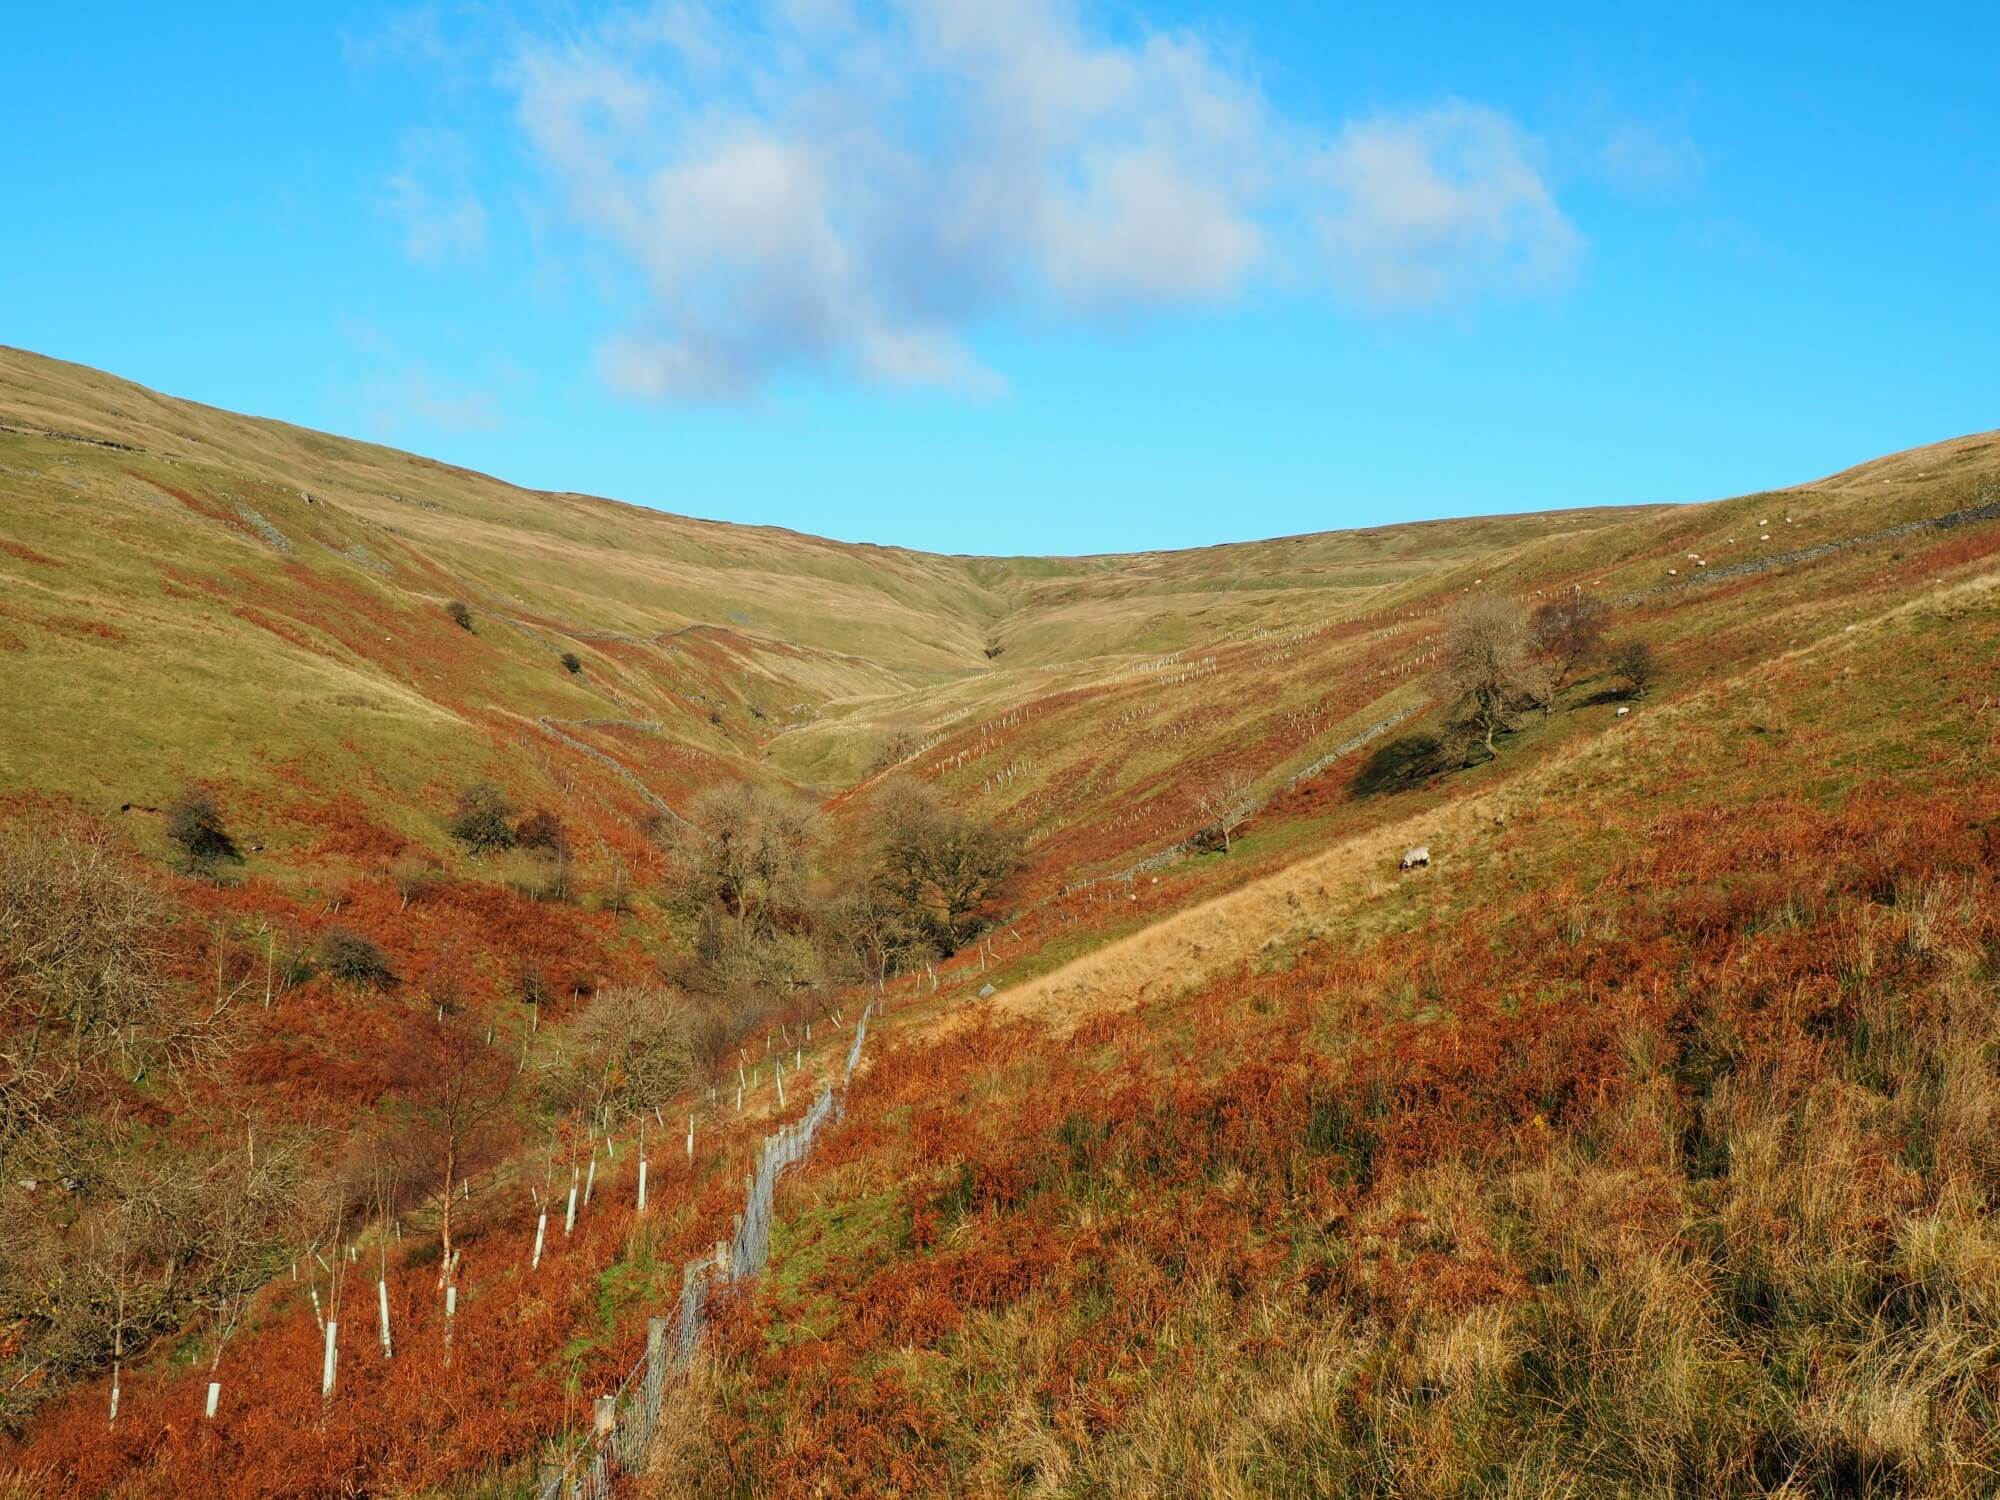 Heading on to Yockenthwaite Moor via Deepdale Gill